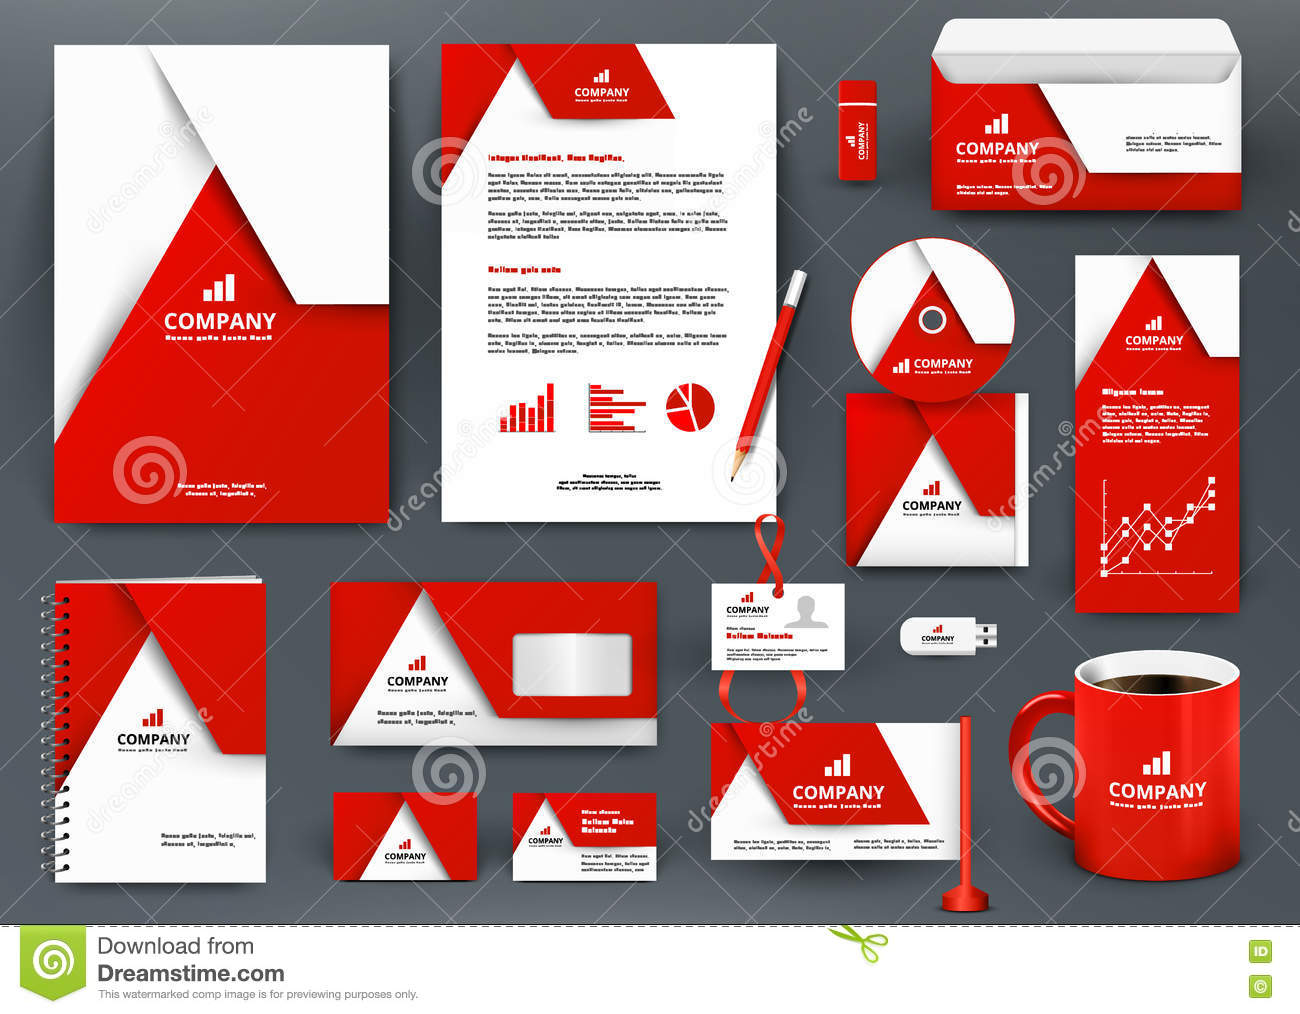 professional universal red branding design kit with origami element